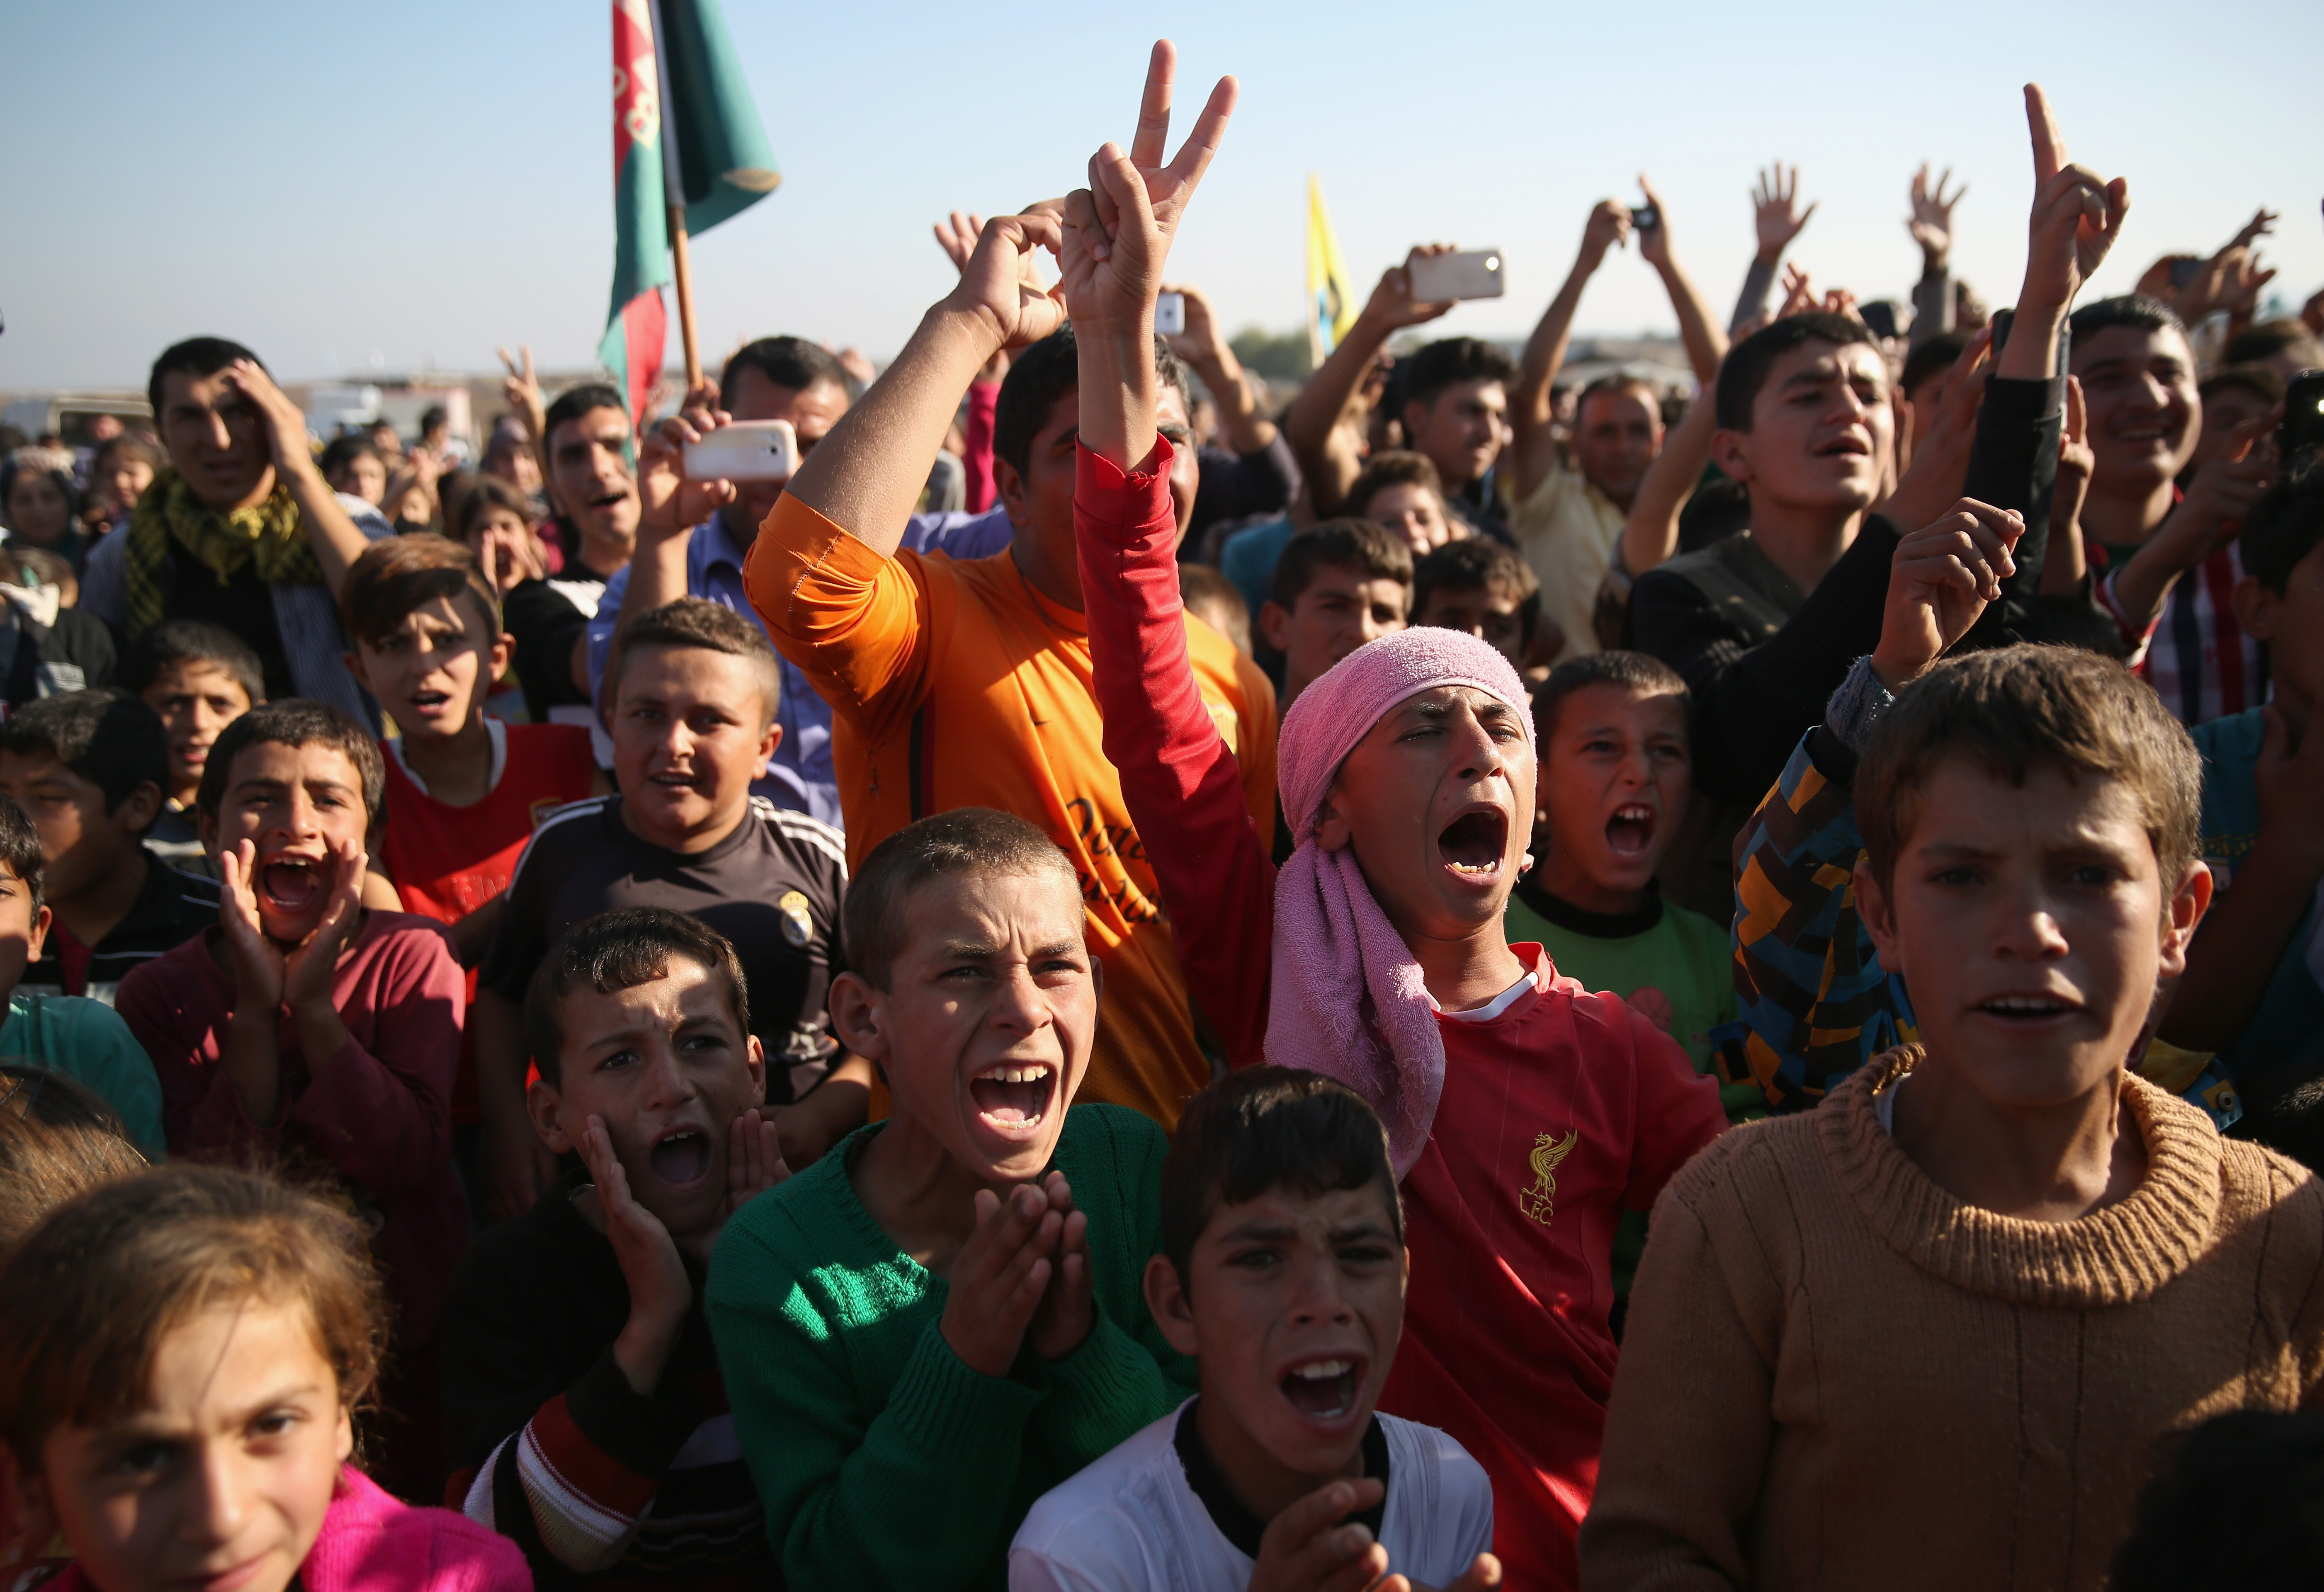 Yazidi refugees celebrate news of the liberation of their homeland of Sinjar from ISIS extremists, while at a refugee camp in Derek, Syria on Nov. 13, 2015.